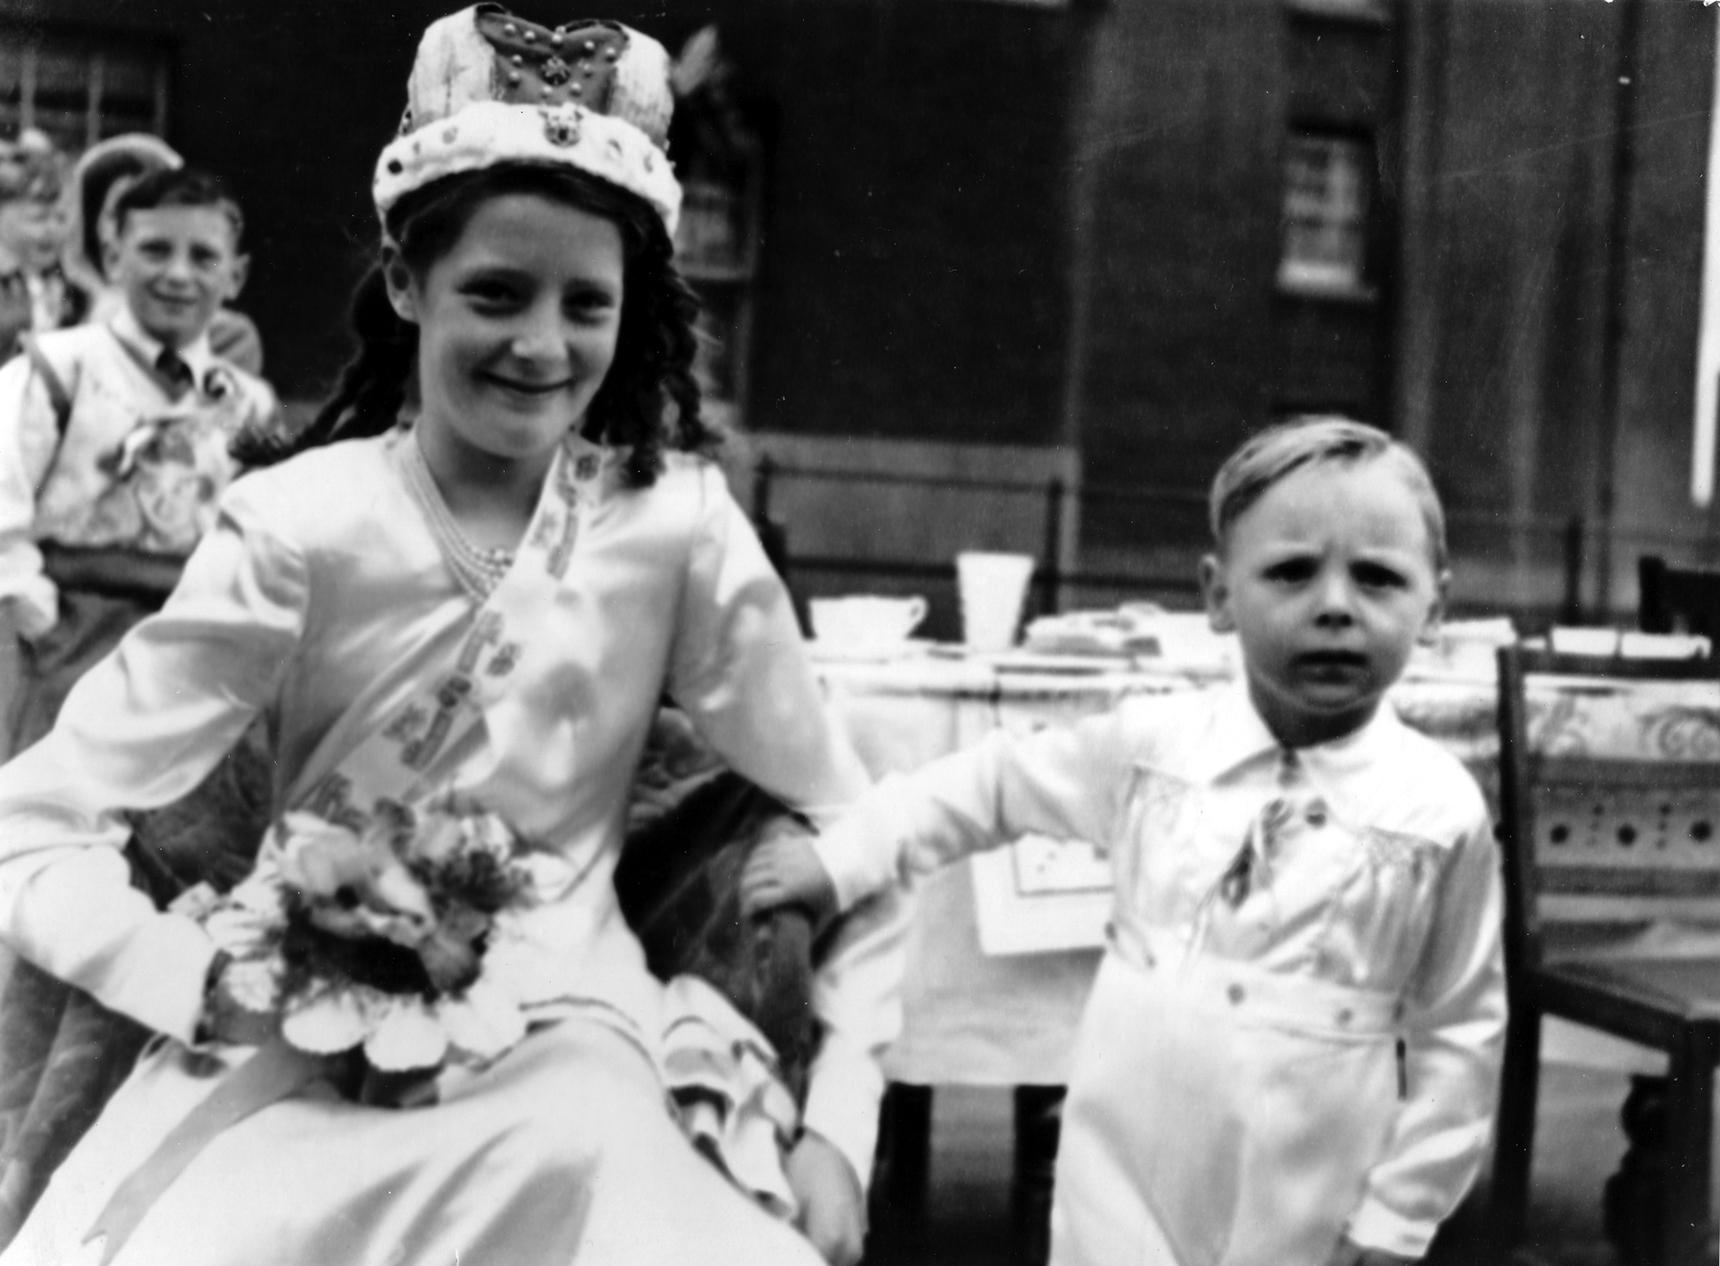 Gala Queen Unknown District 1950s